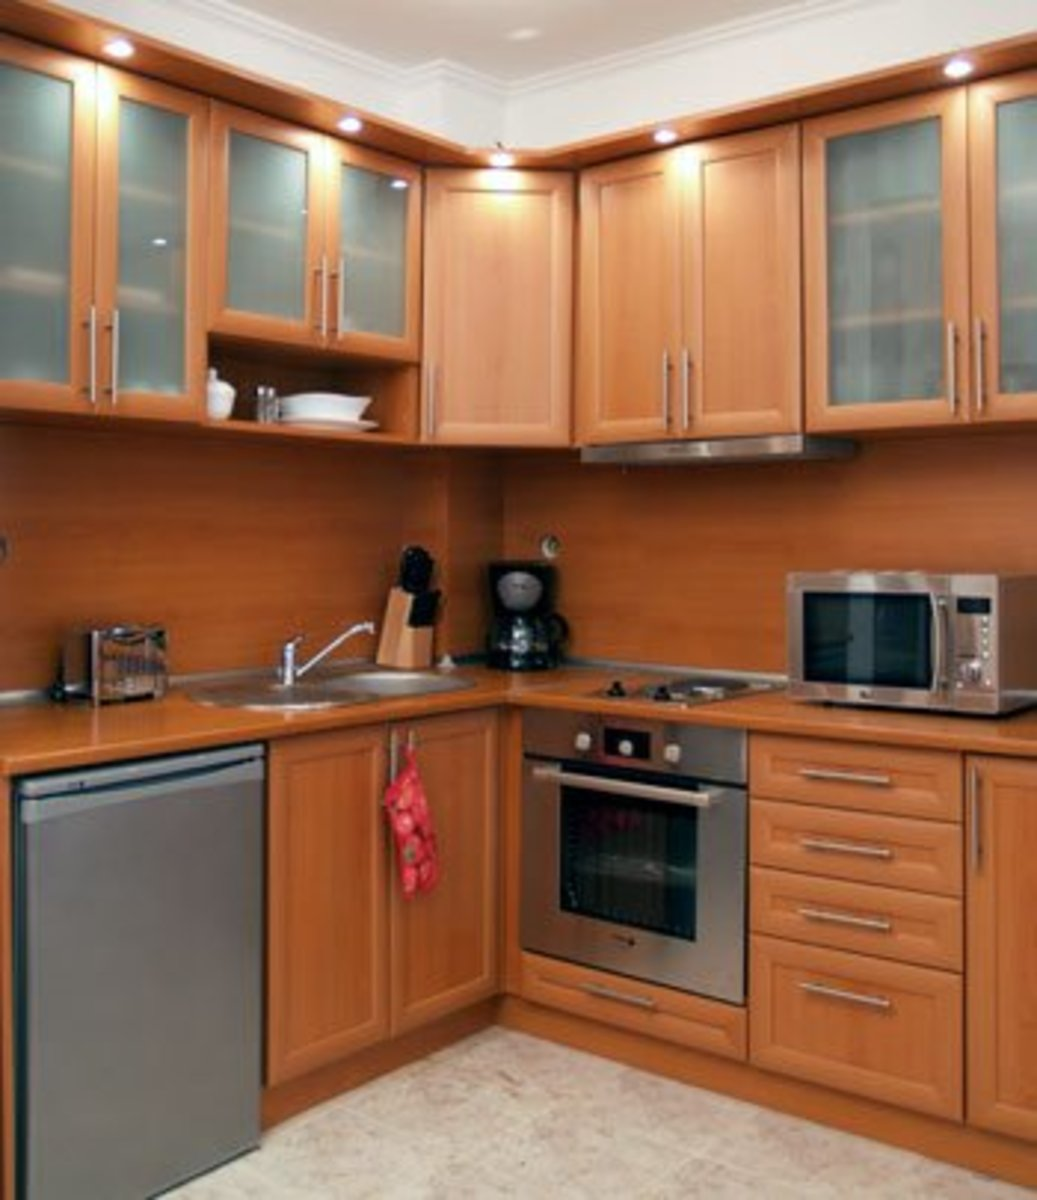 Decorating Ideas Kitchen Design And Decoration On A Budget